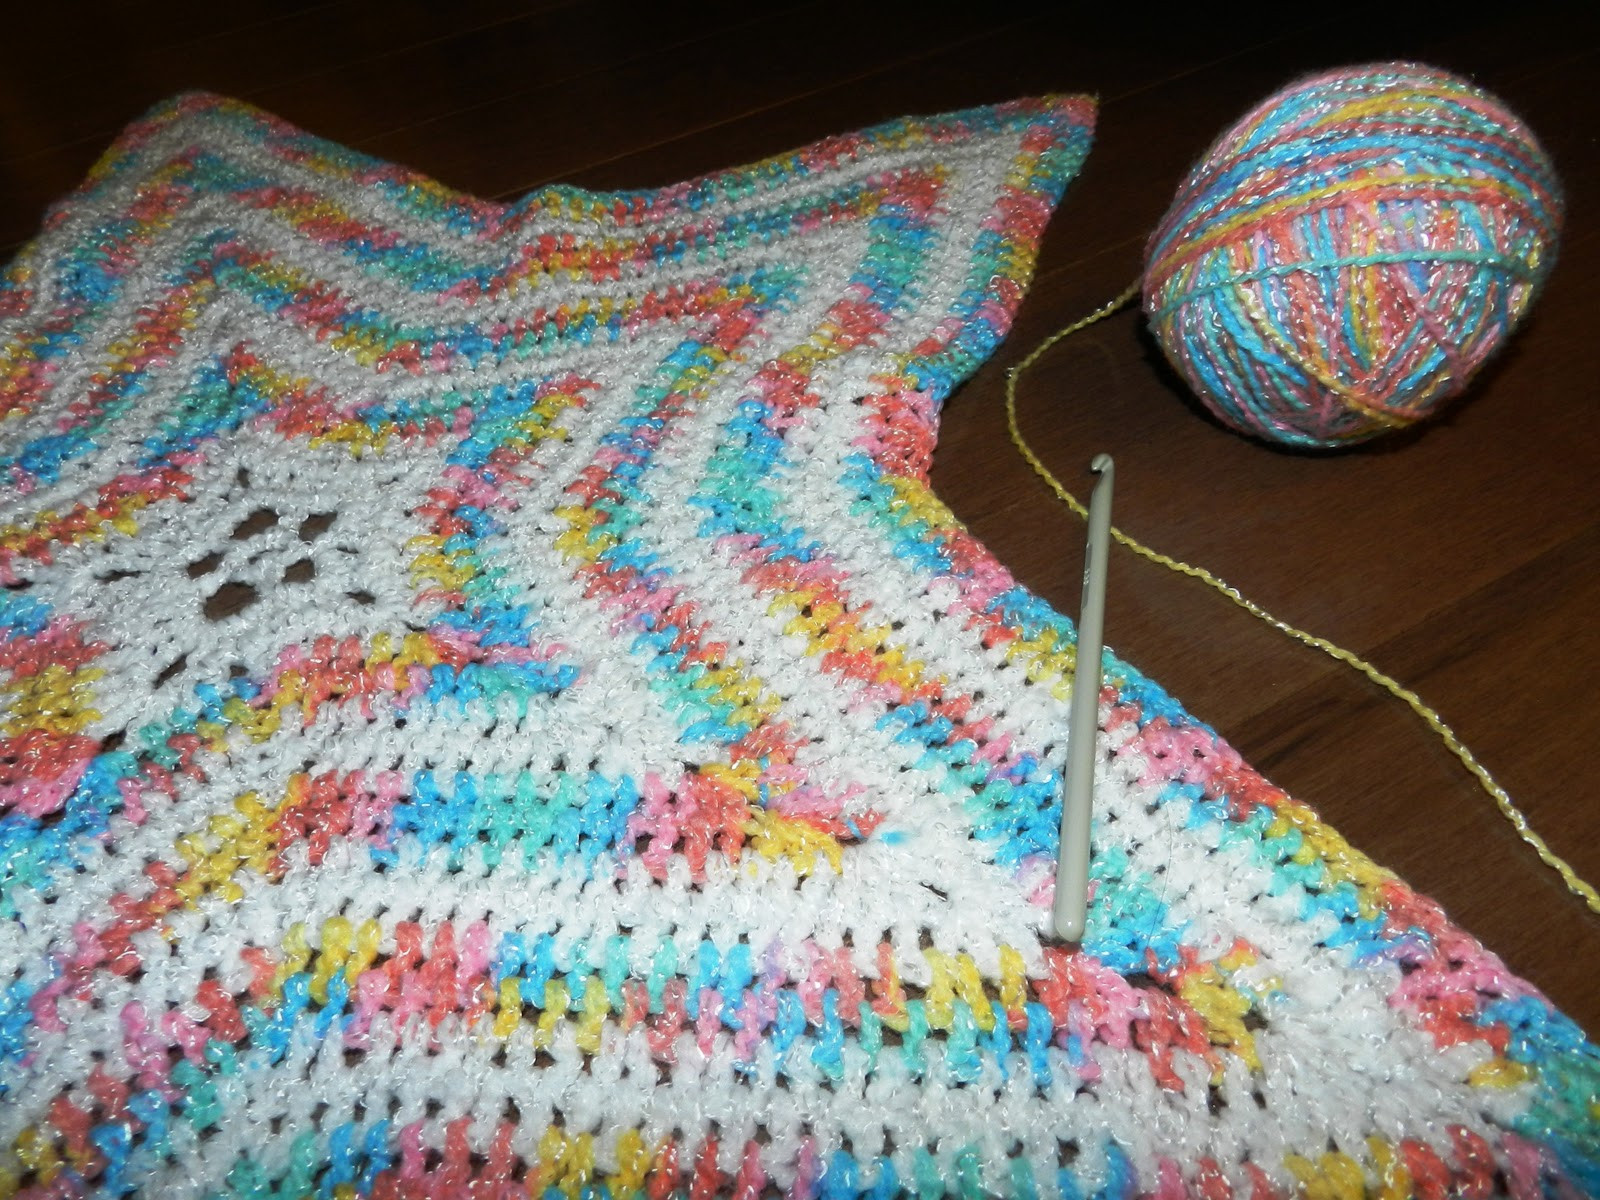 Luxury A Dash Of Sparkle Crochet Baby Star Blanket Crochet Star Blanket Of Superb 49 Images Crochet Star Blanket